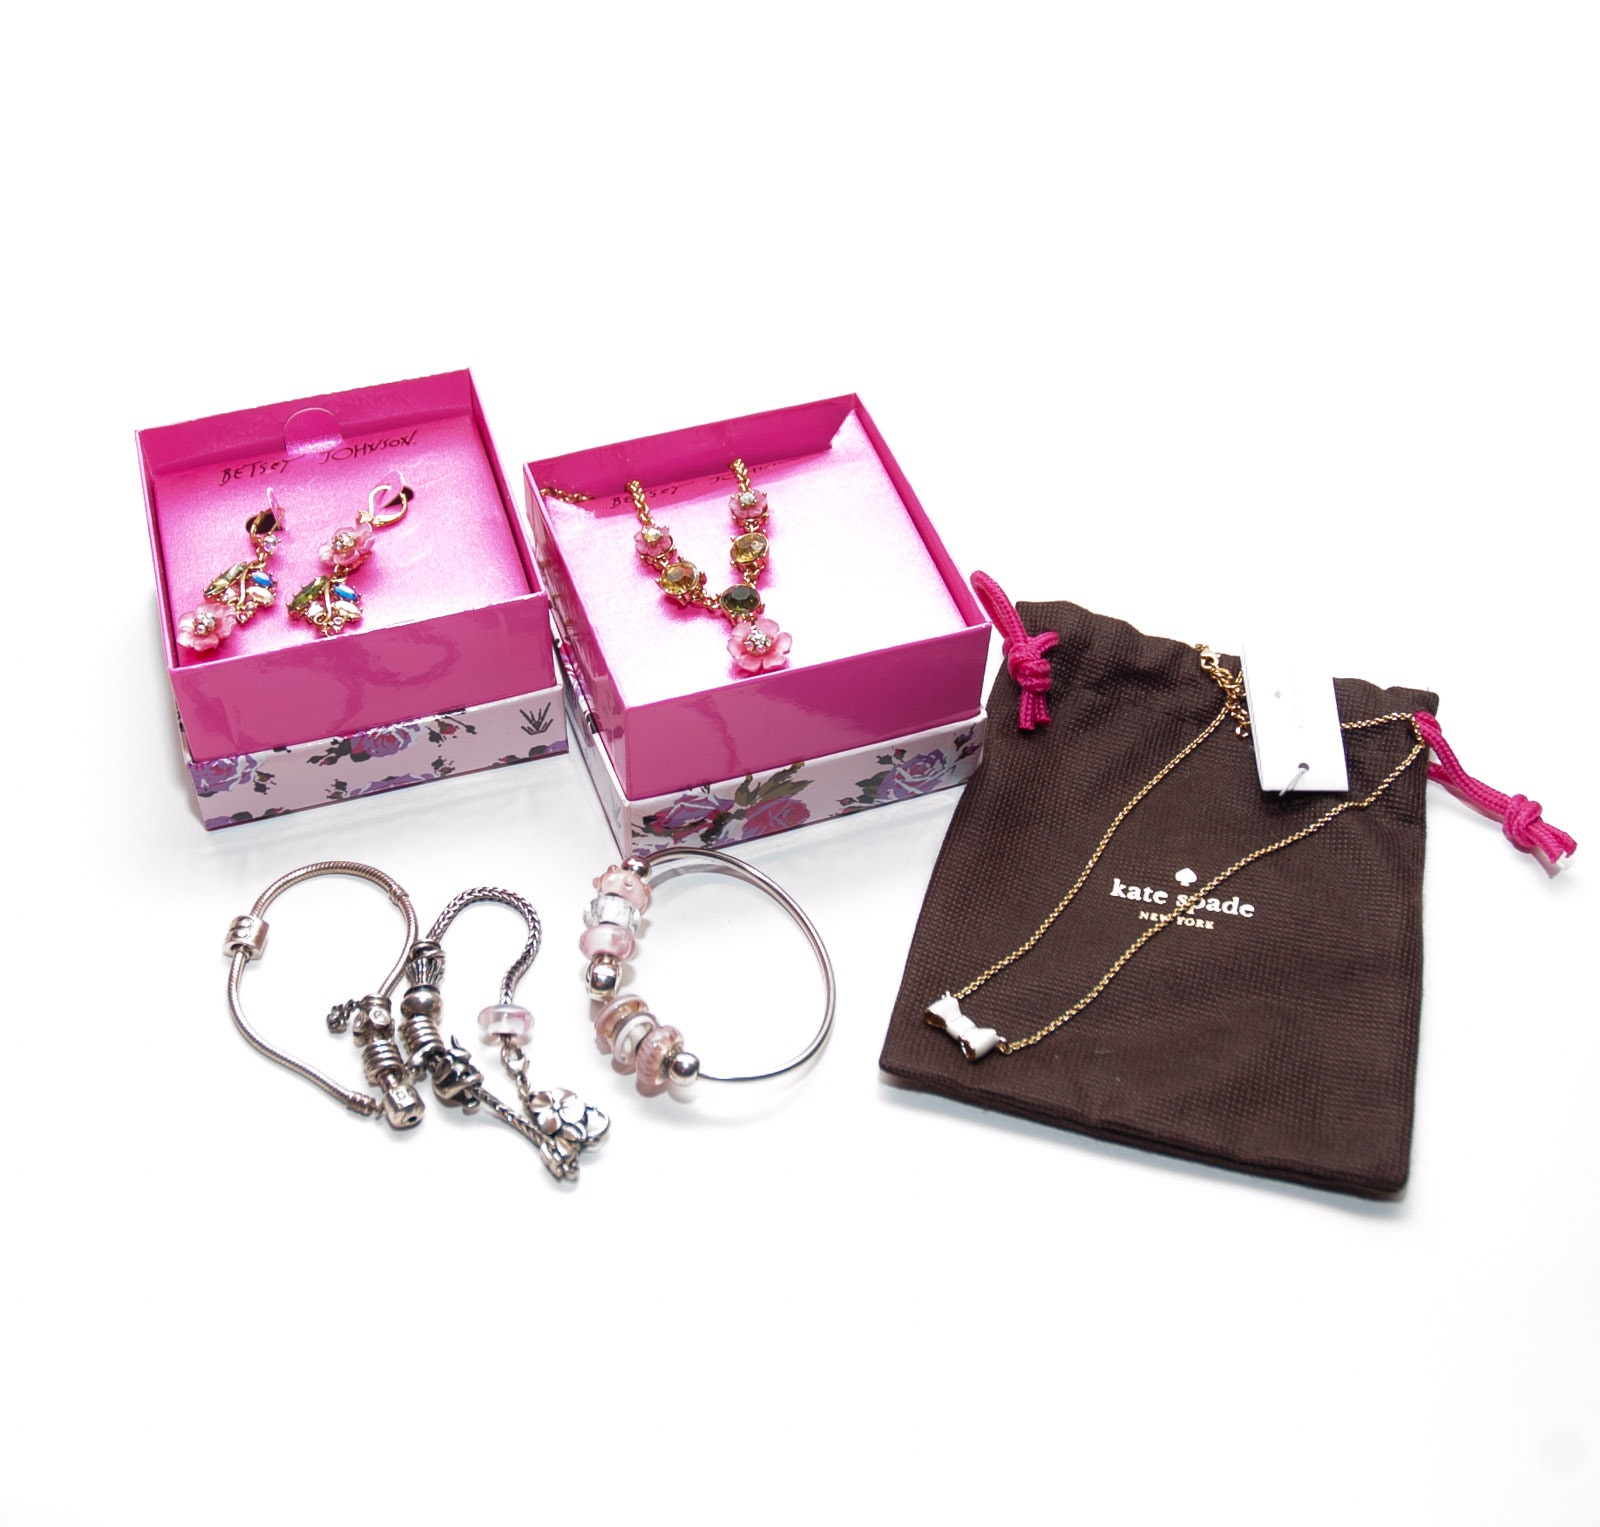 Assortment of Jewelry Including Betsey Johnson and Kate Spade